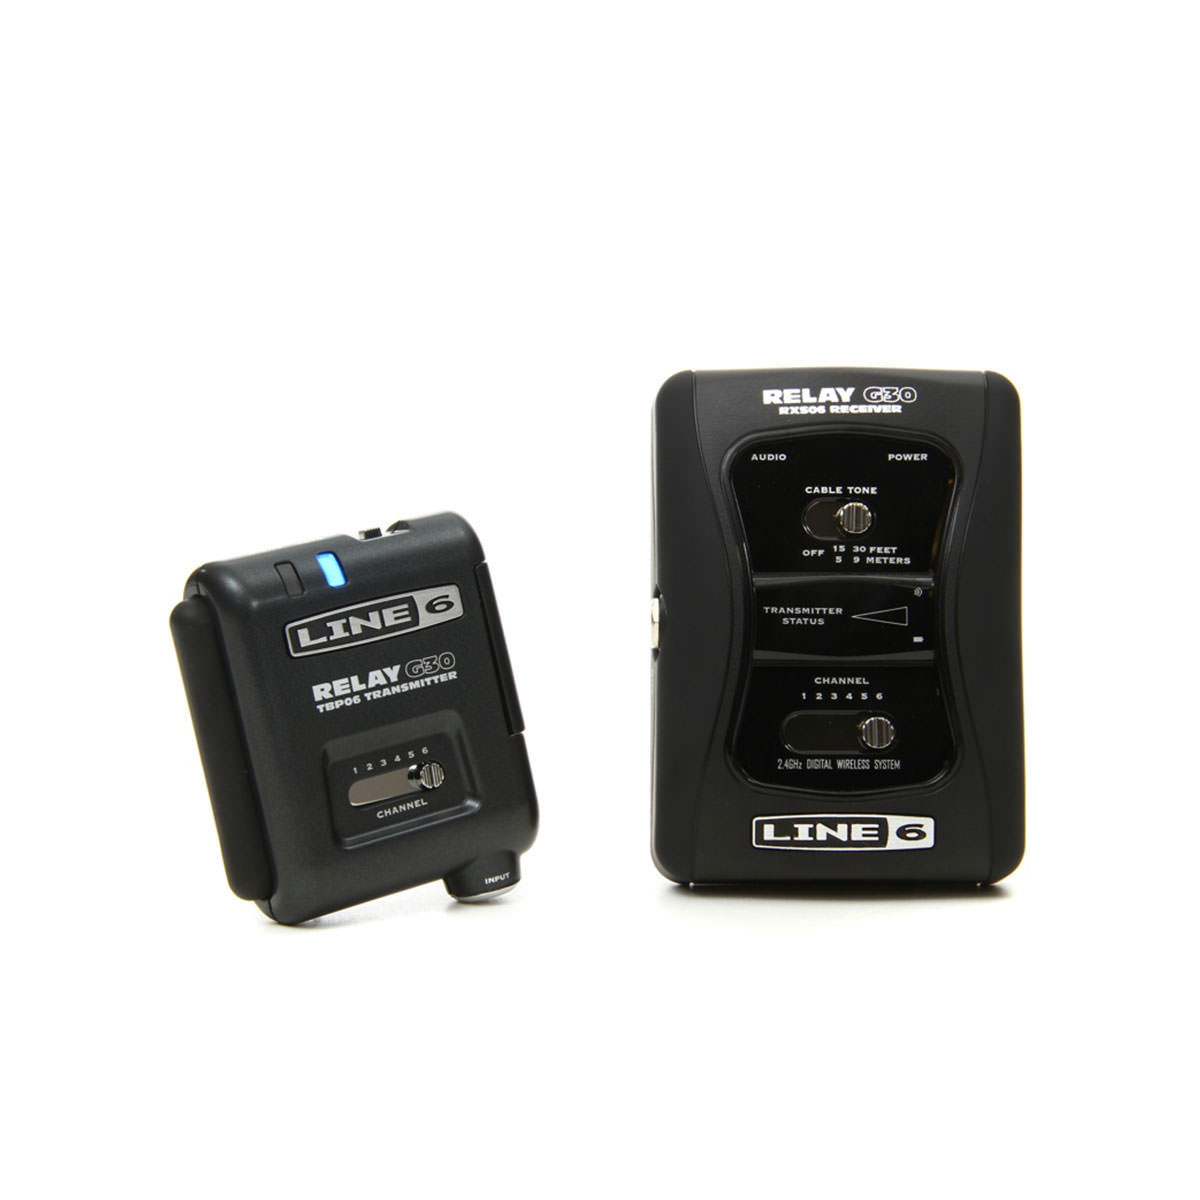 Line 6 Relay G30 Digital Wireless Guitar System 3